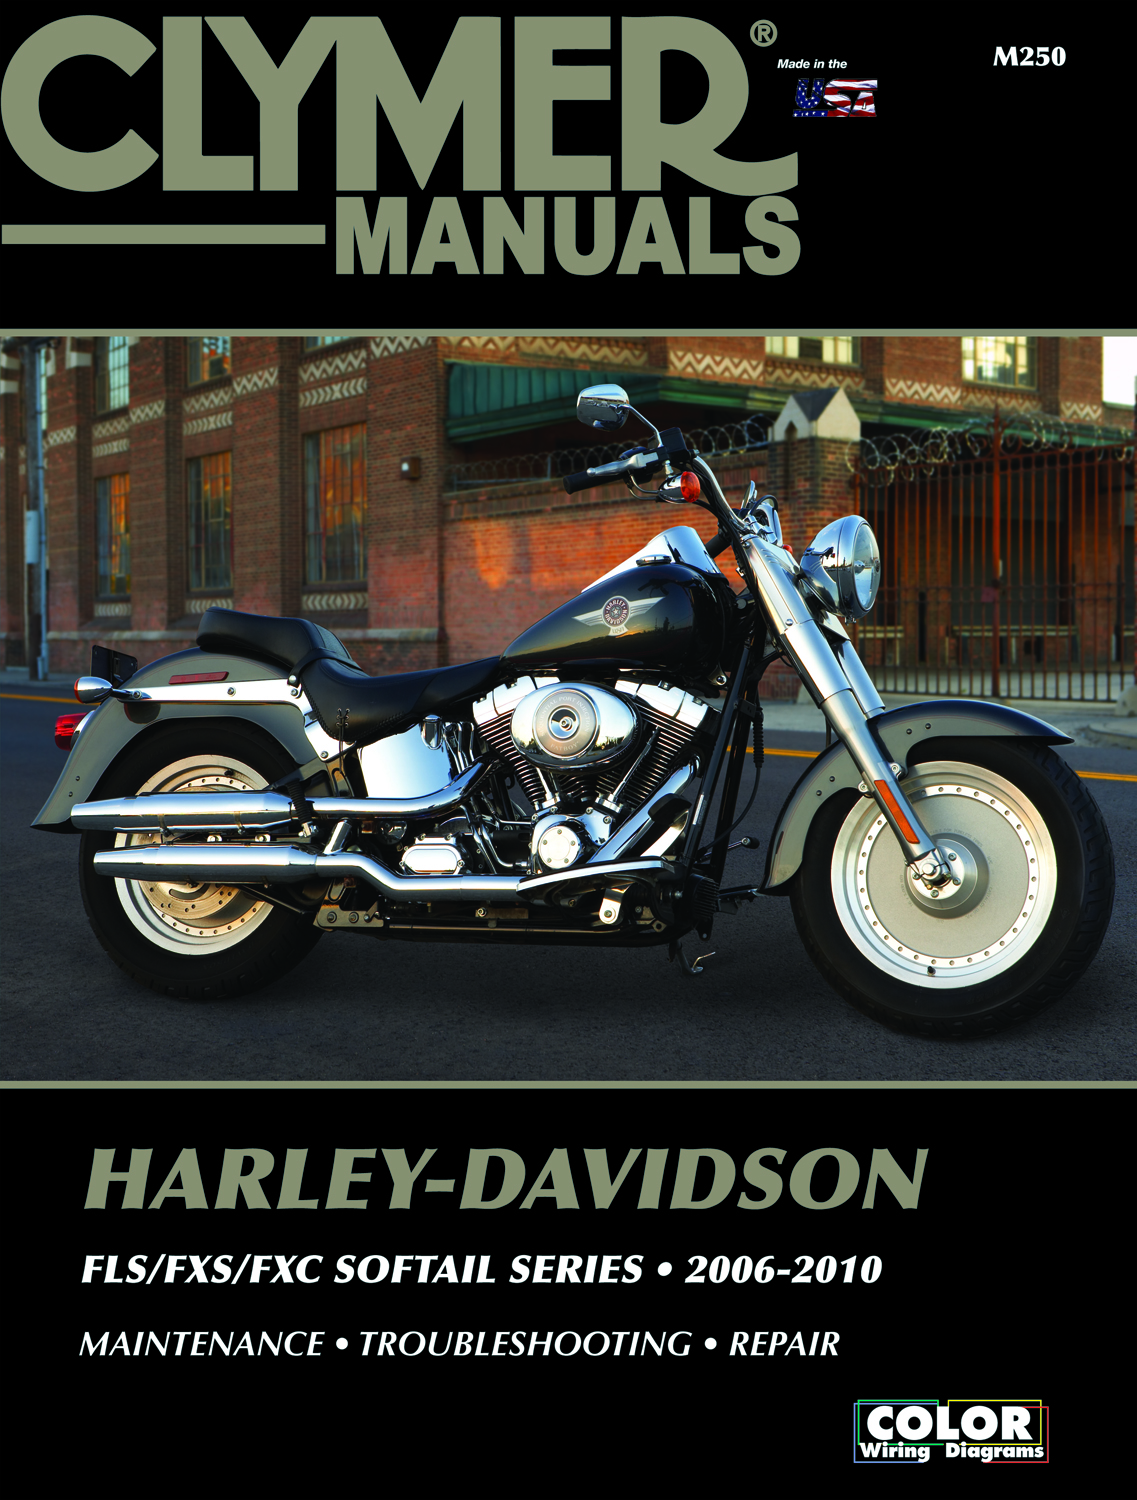 harley davidson motorcycle footpeg diagram 98 flstc harley davidson motorcycle diagrams